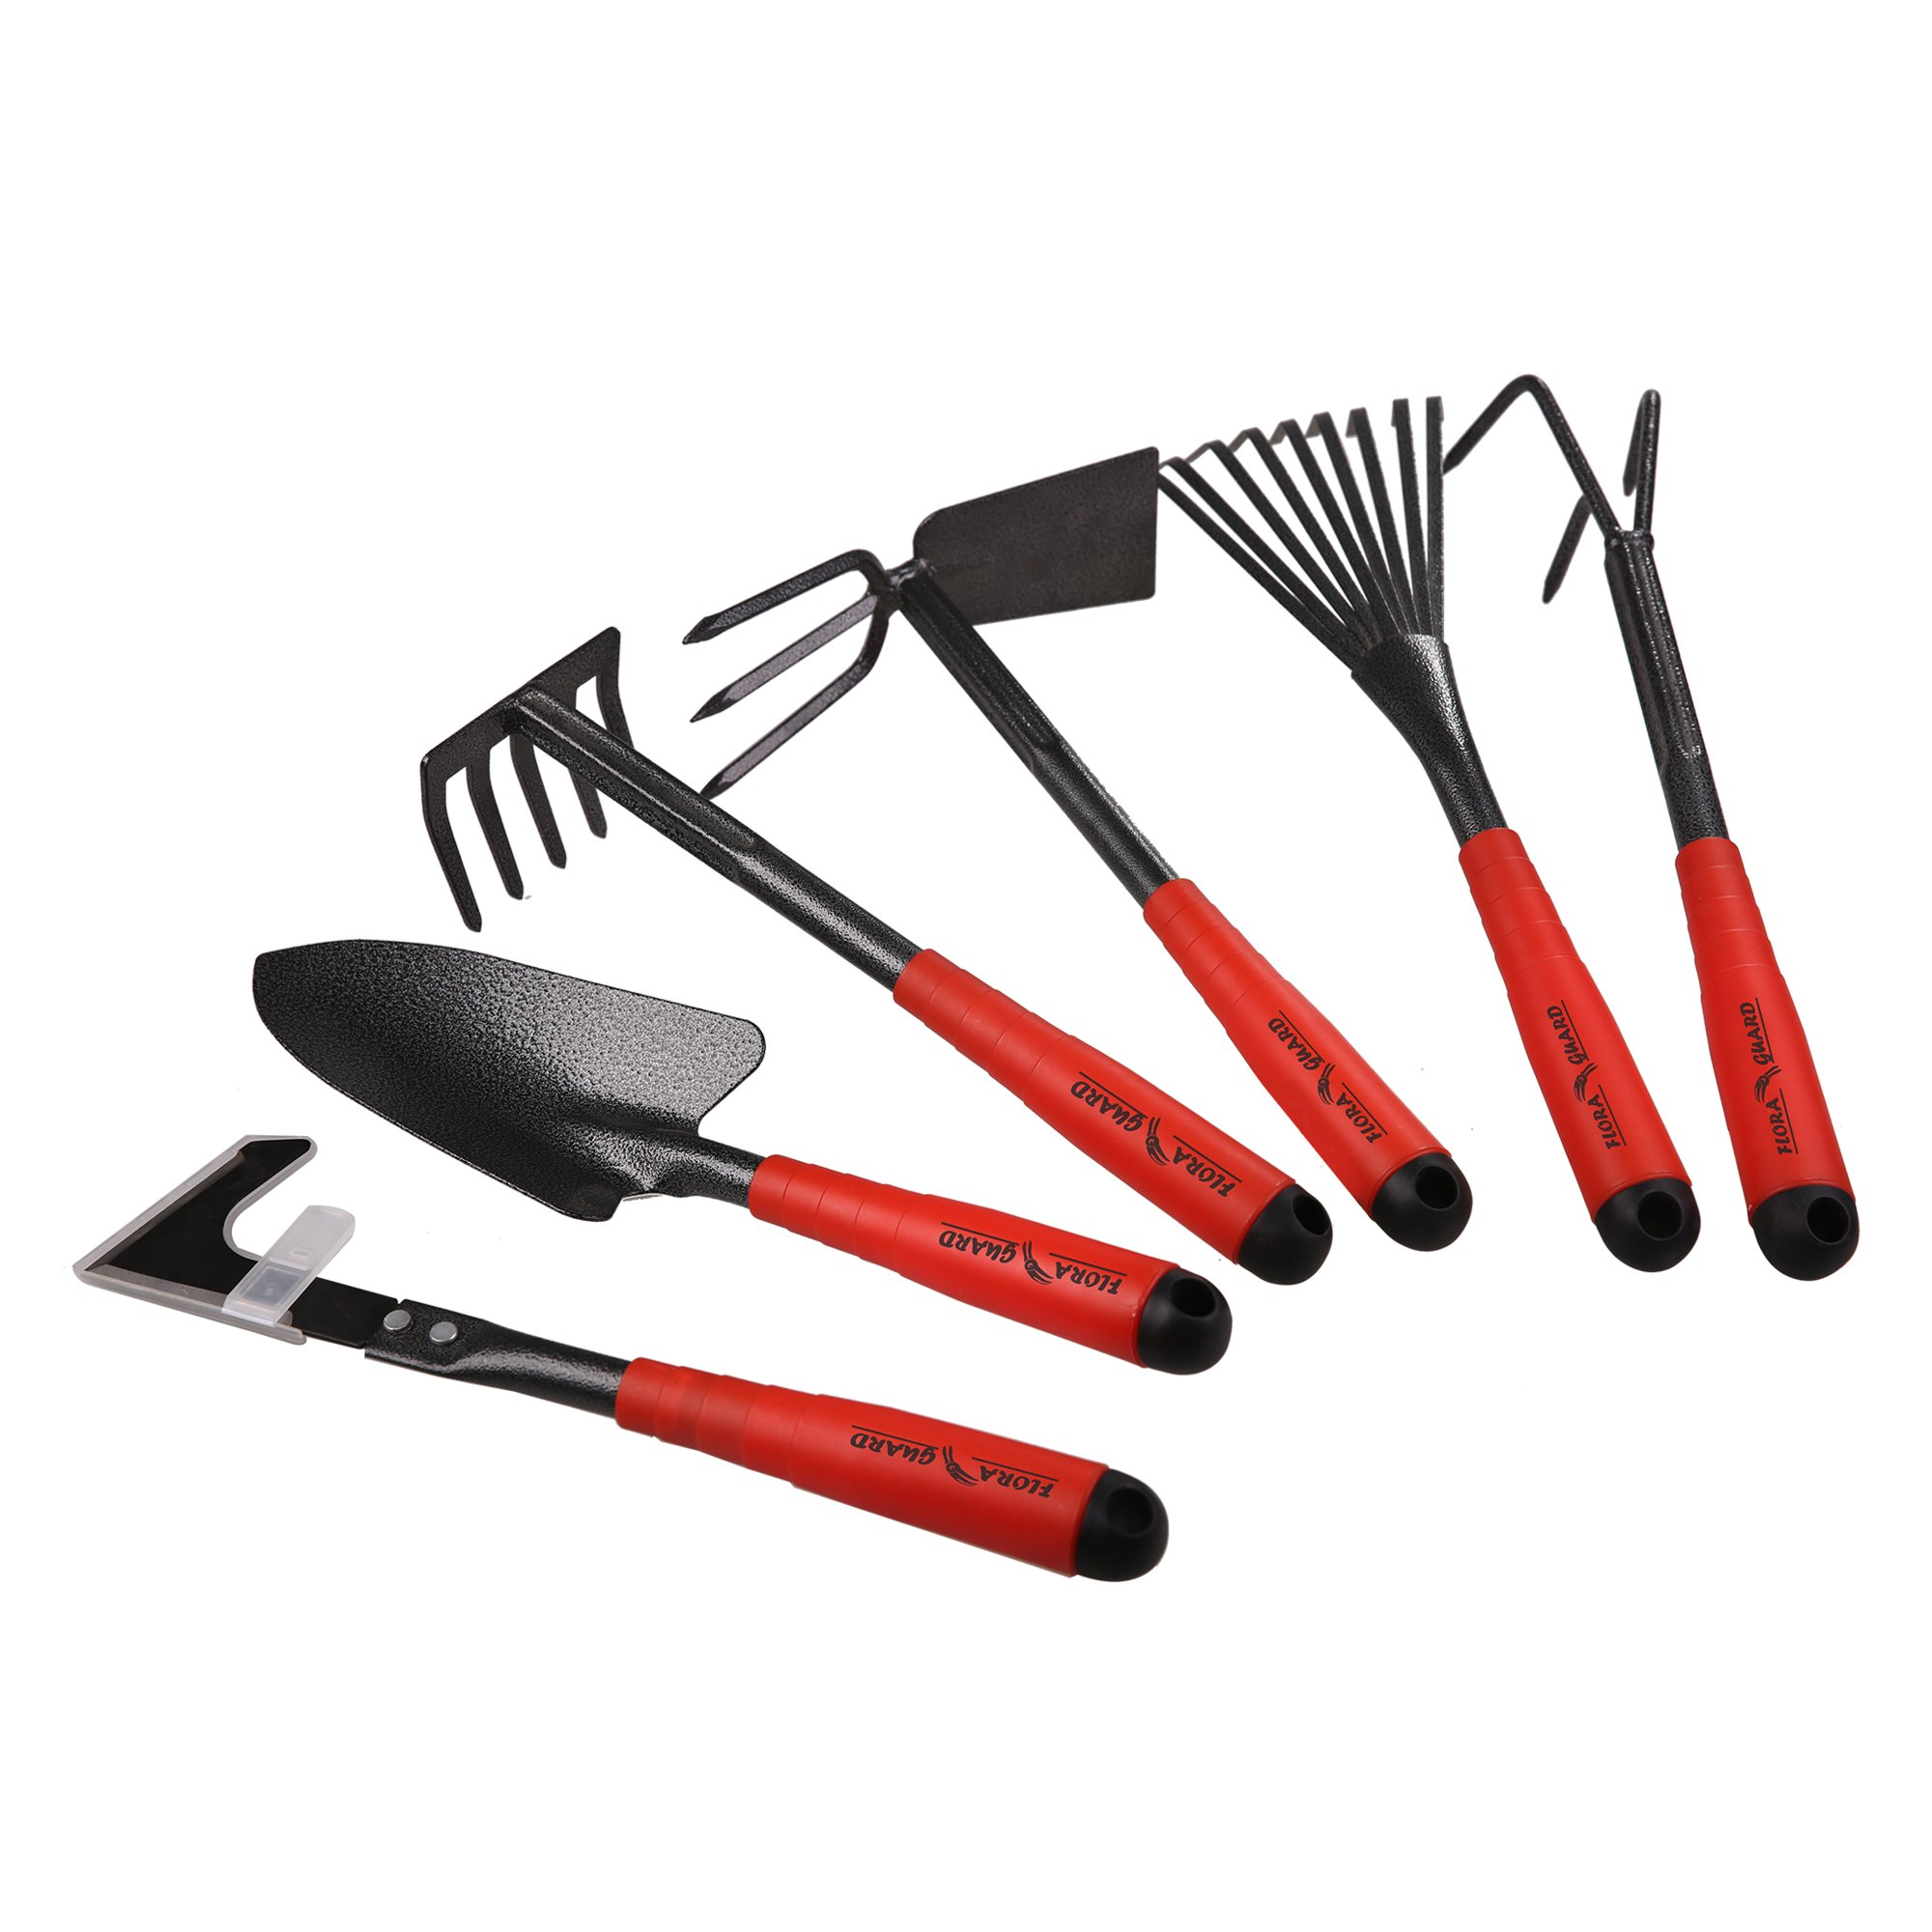 FLORA GUARD 6 Piece Garden Tool Sets - Including Trowel,5-Teeth rake,9-Teeth Leaf rake,Double Hoe 3 prongs, Cultivator, Weeder, Gardening Hand Tools High Carbon Steel Heads